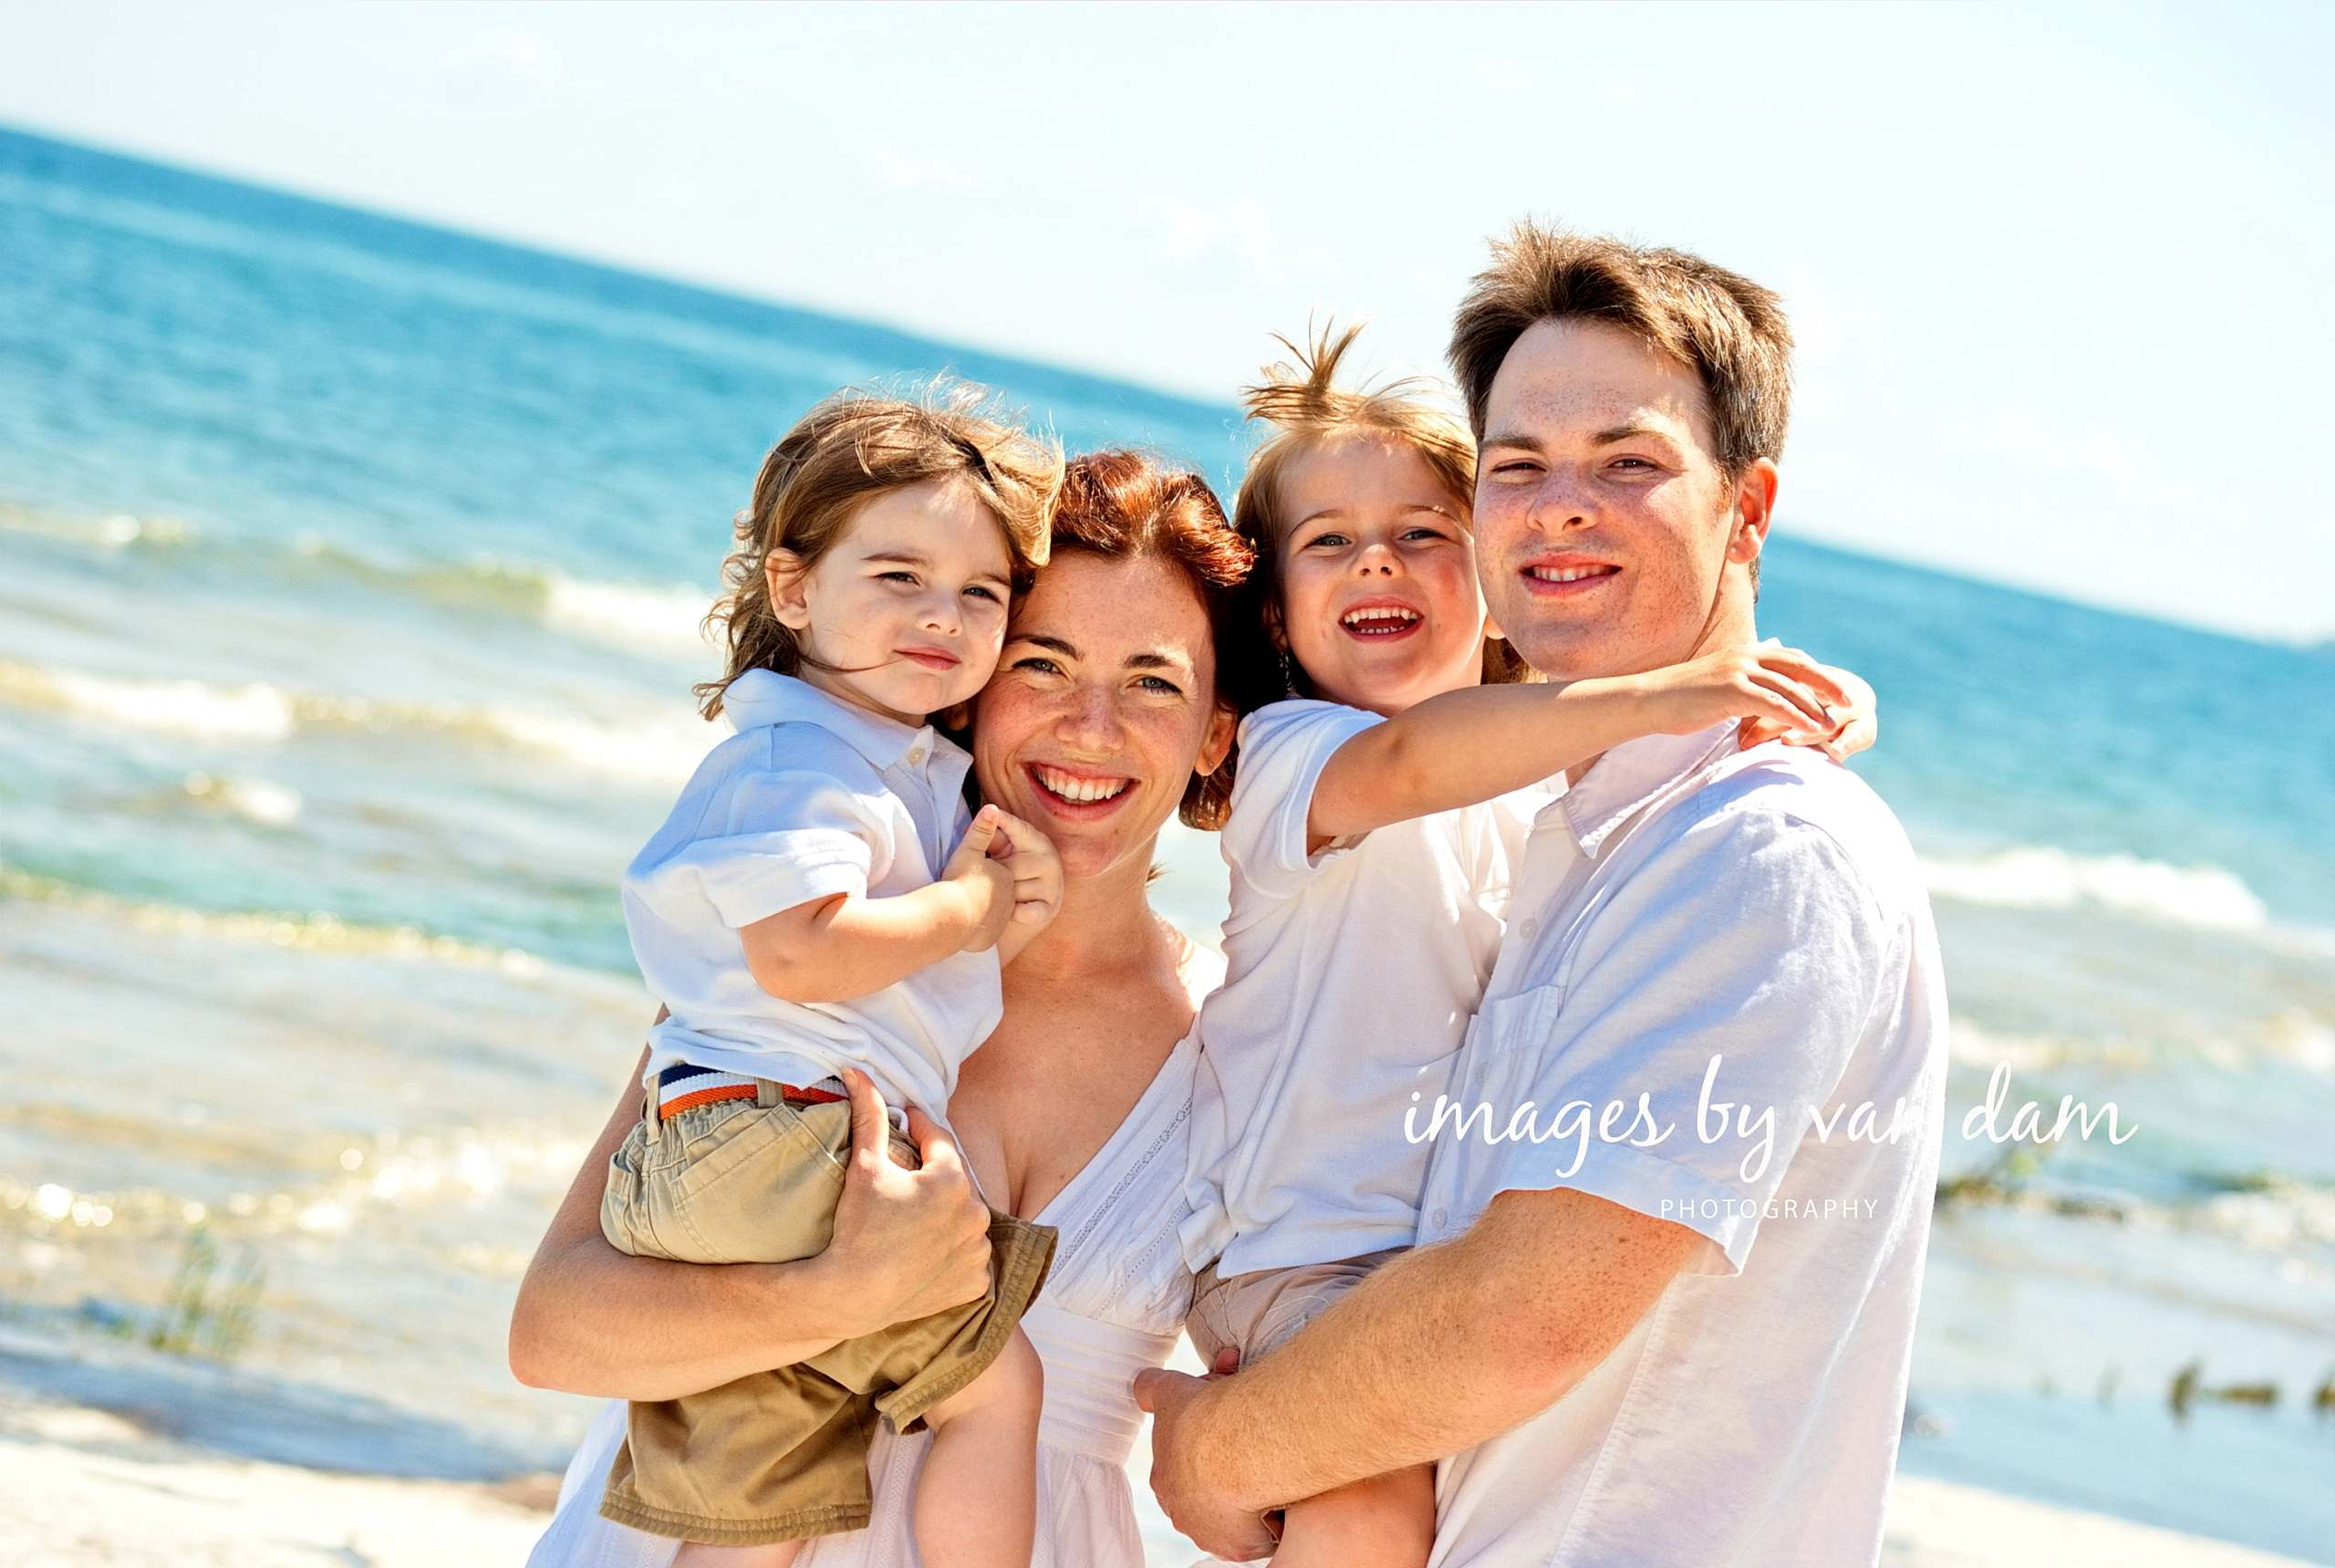 Family Portraits | Images by van Dam photography: Muskoka, Barrie ...